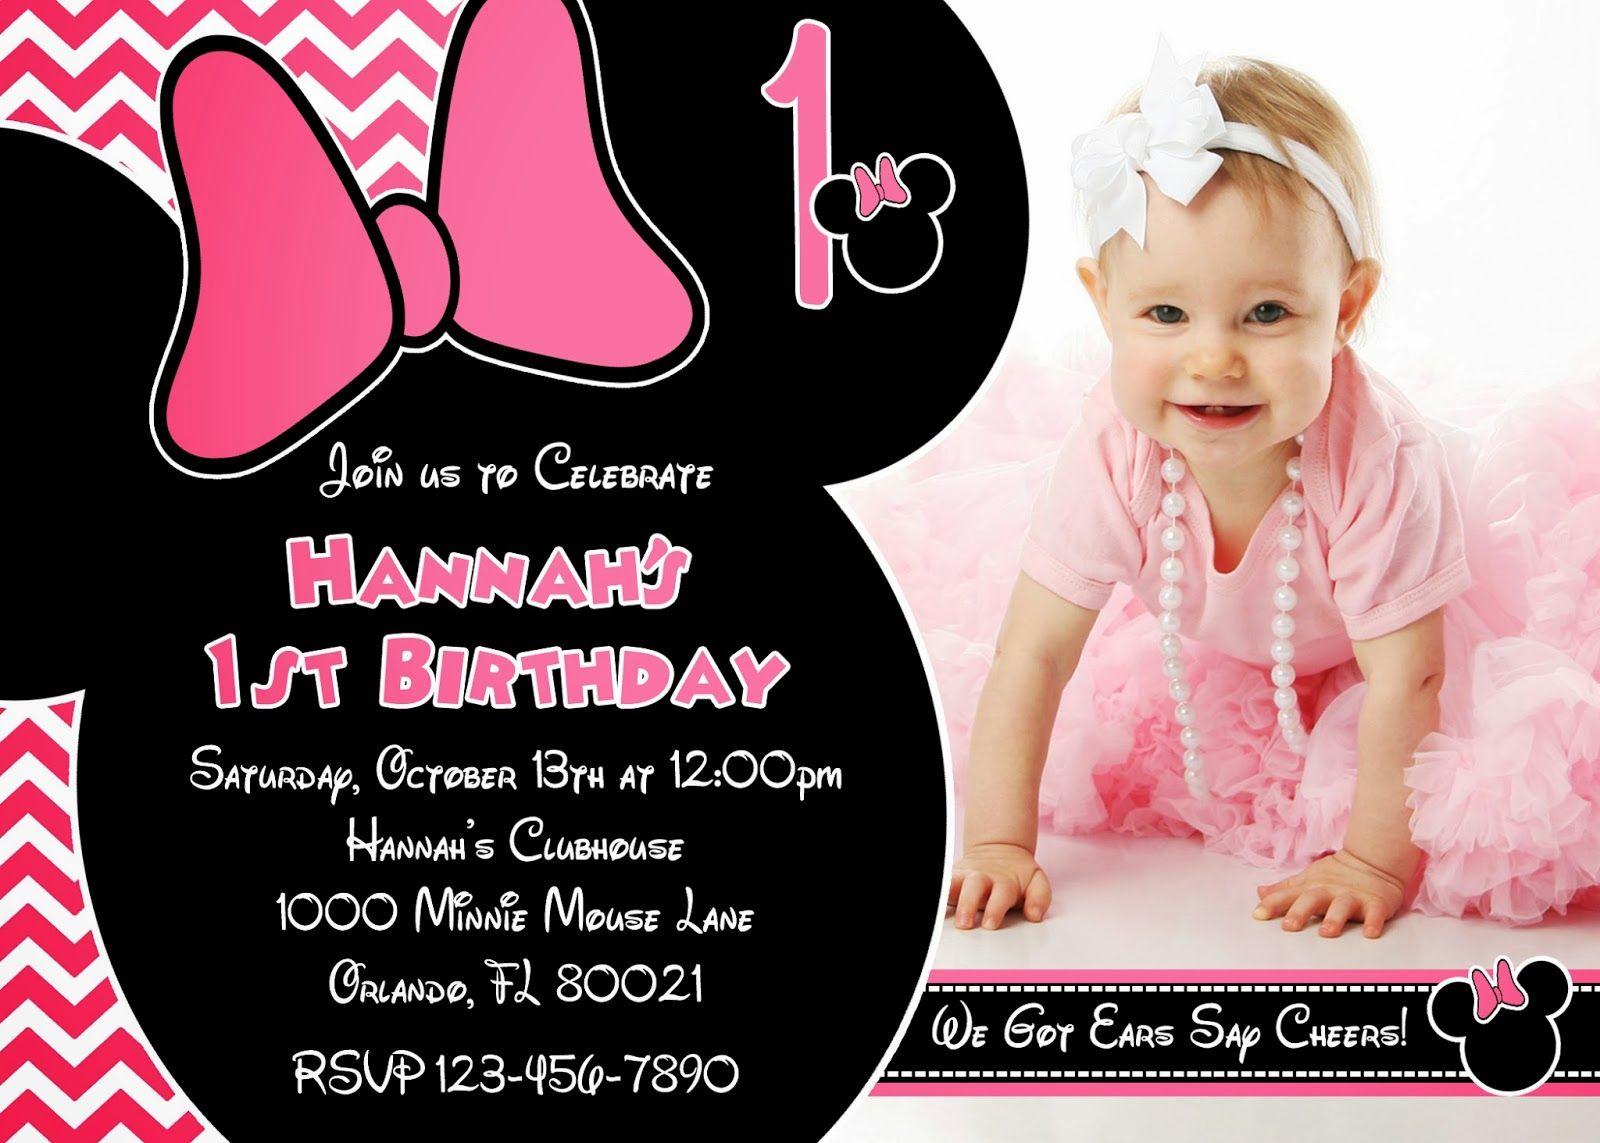 One Year Old Birthday Party Invitations My Birthday – Party City Birthday Invitations